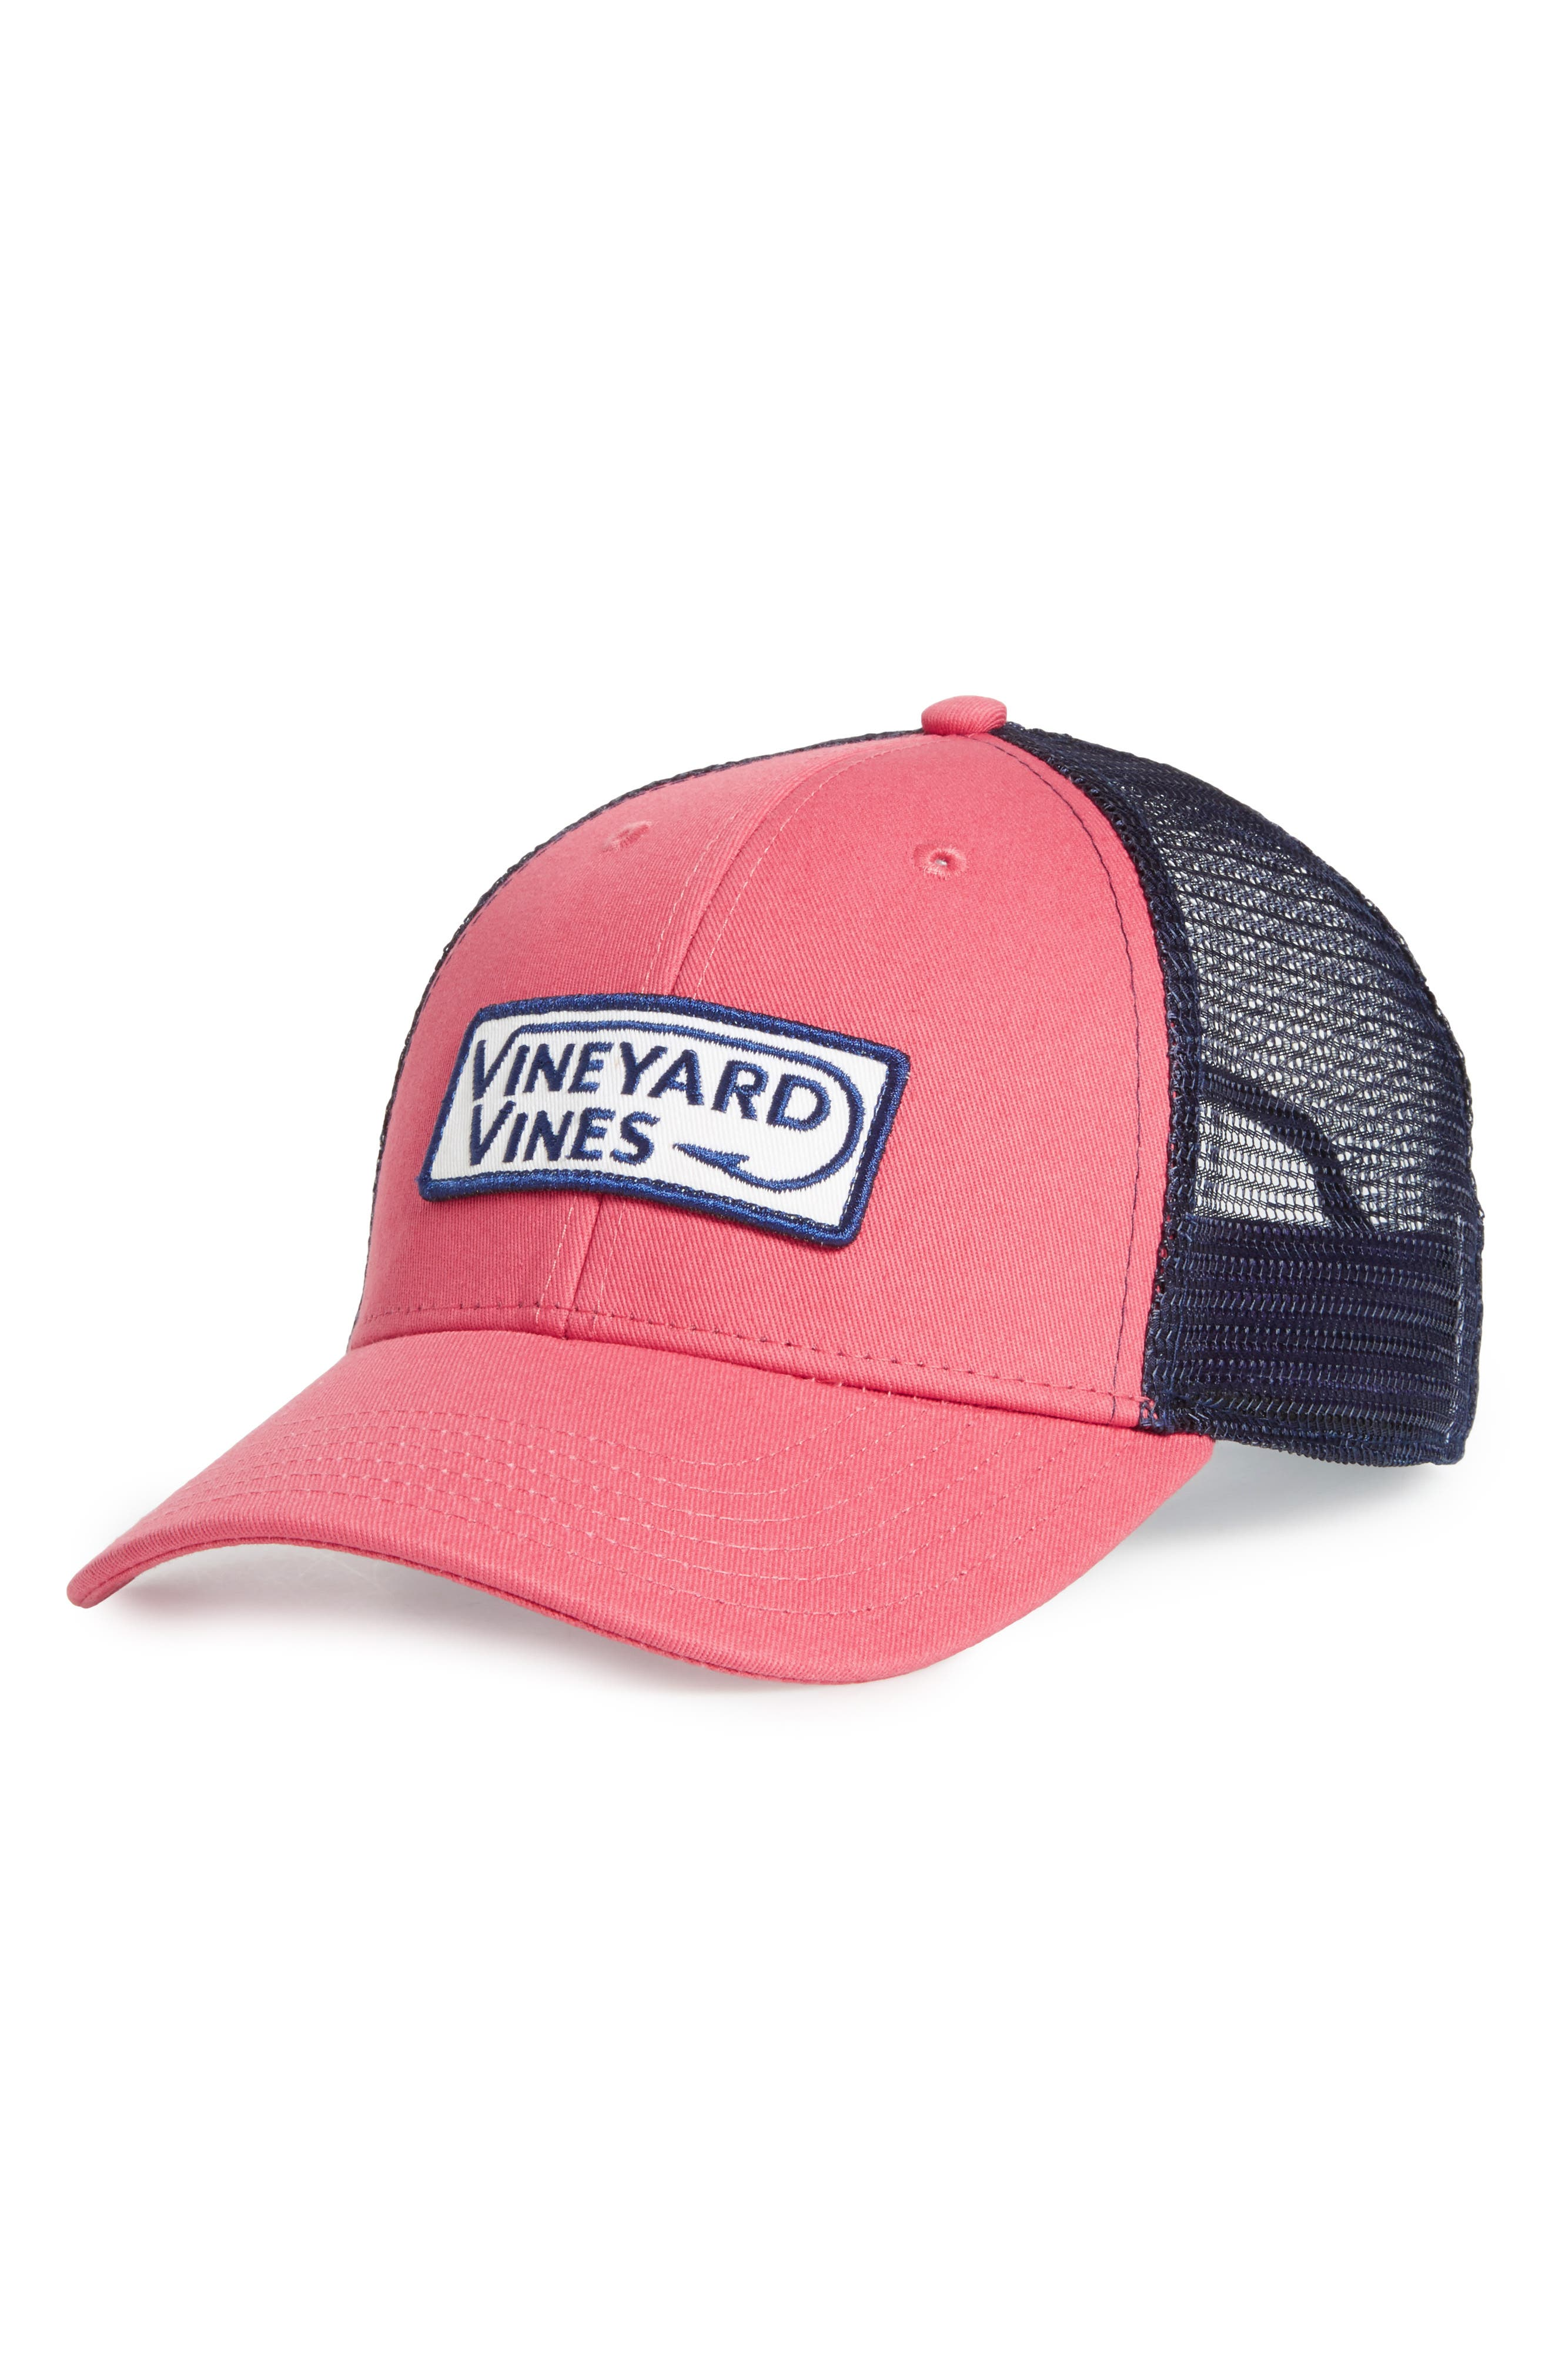 Hook Patch Trucker Cap,                             Main thumbnail 1, color,                             Jetty Red